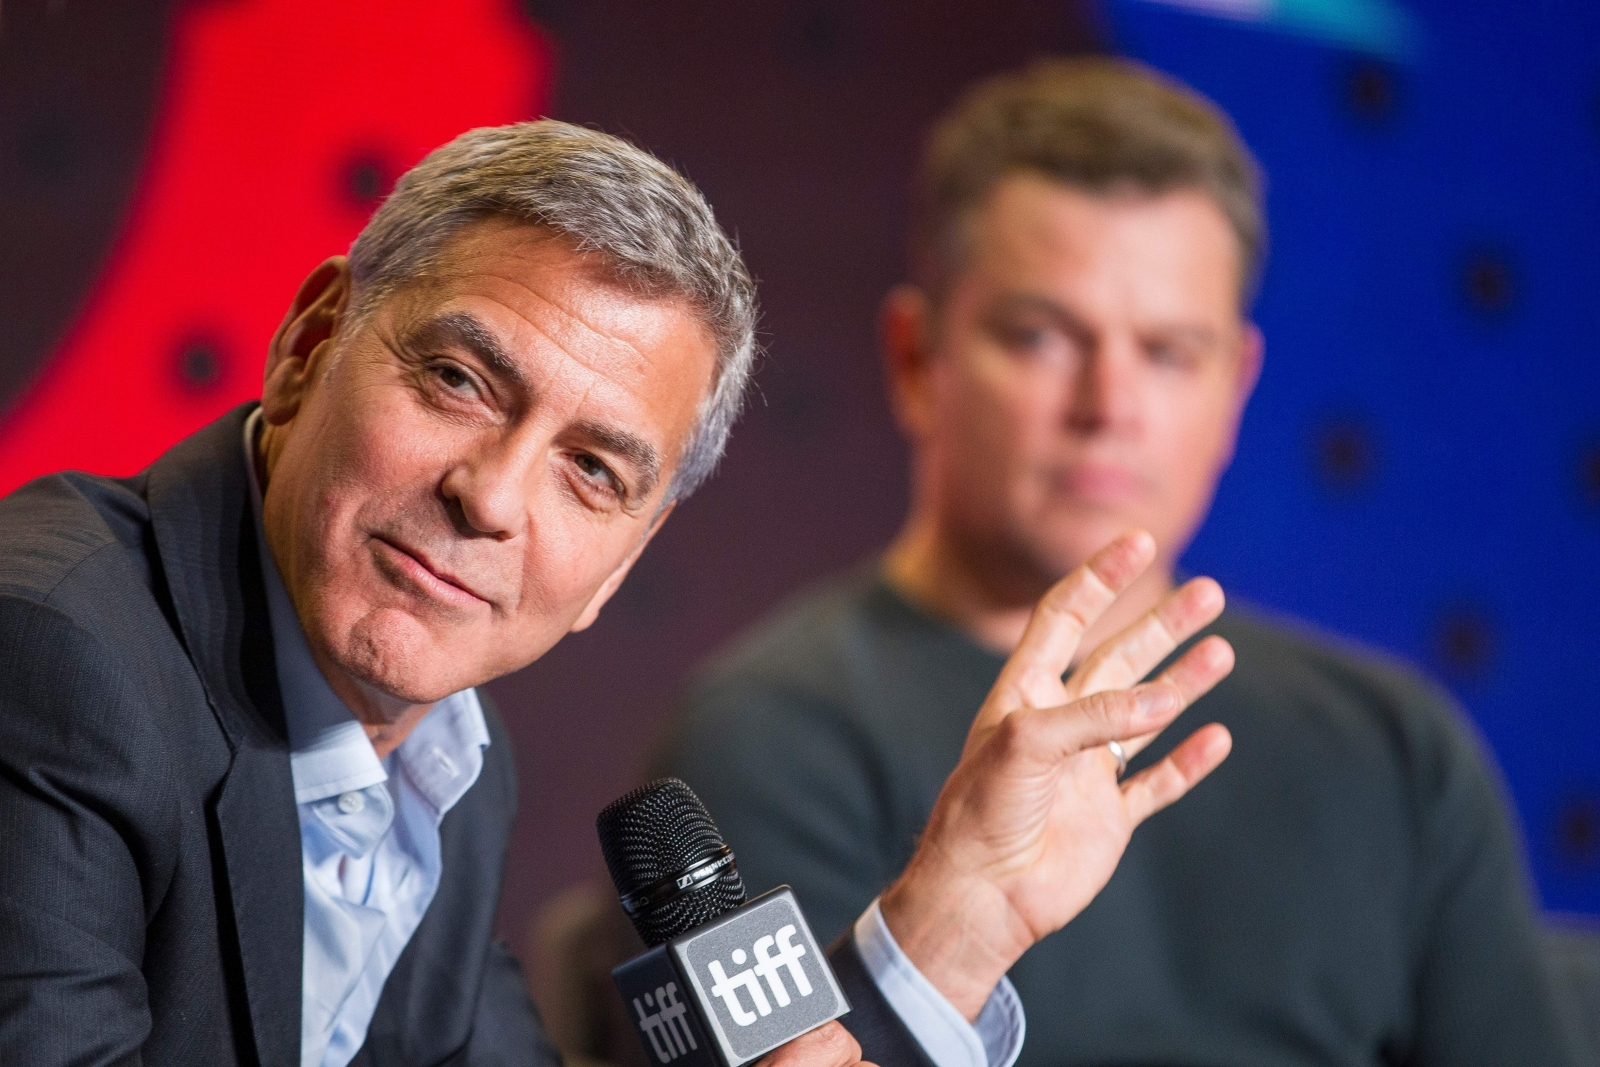 Clooney slams Hillary's failed campaign: 'I never saw her elevate her game'